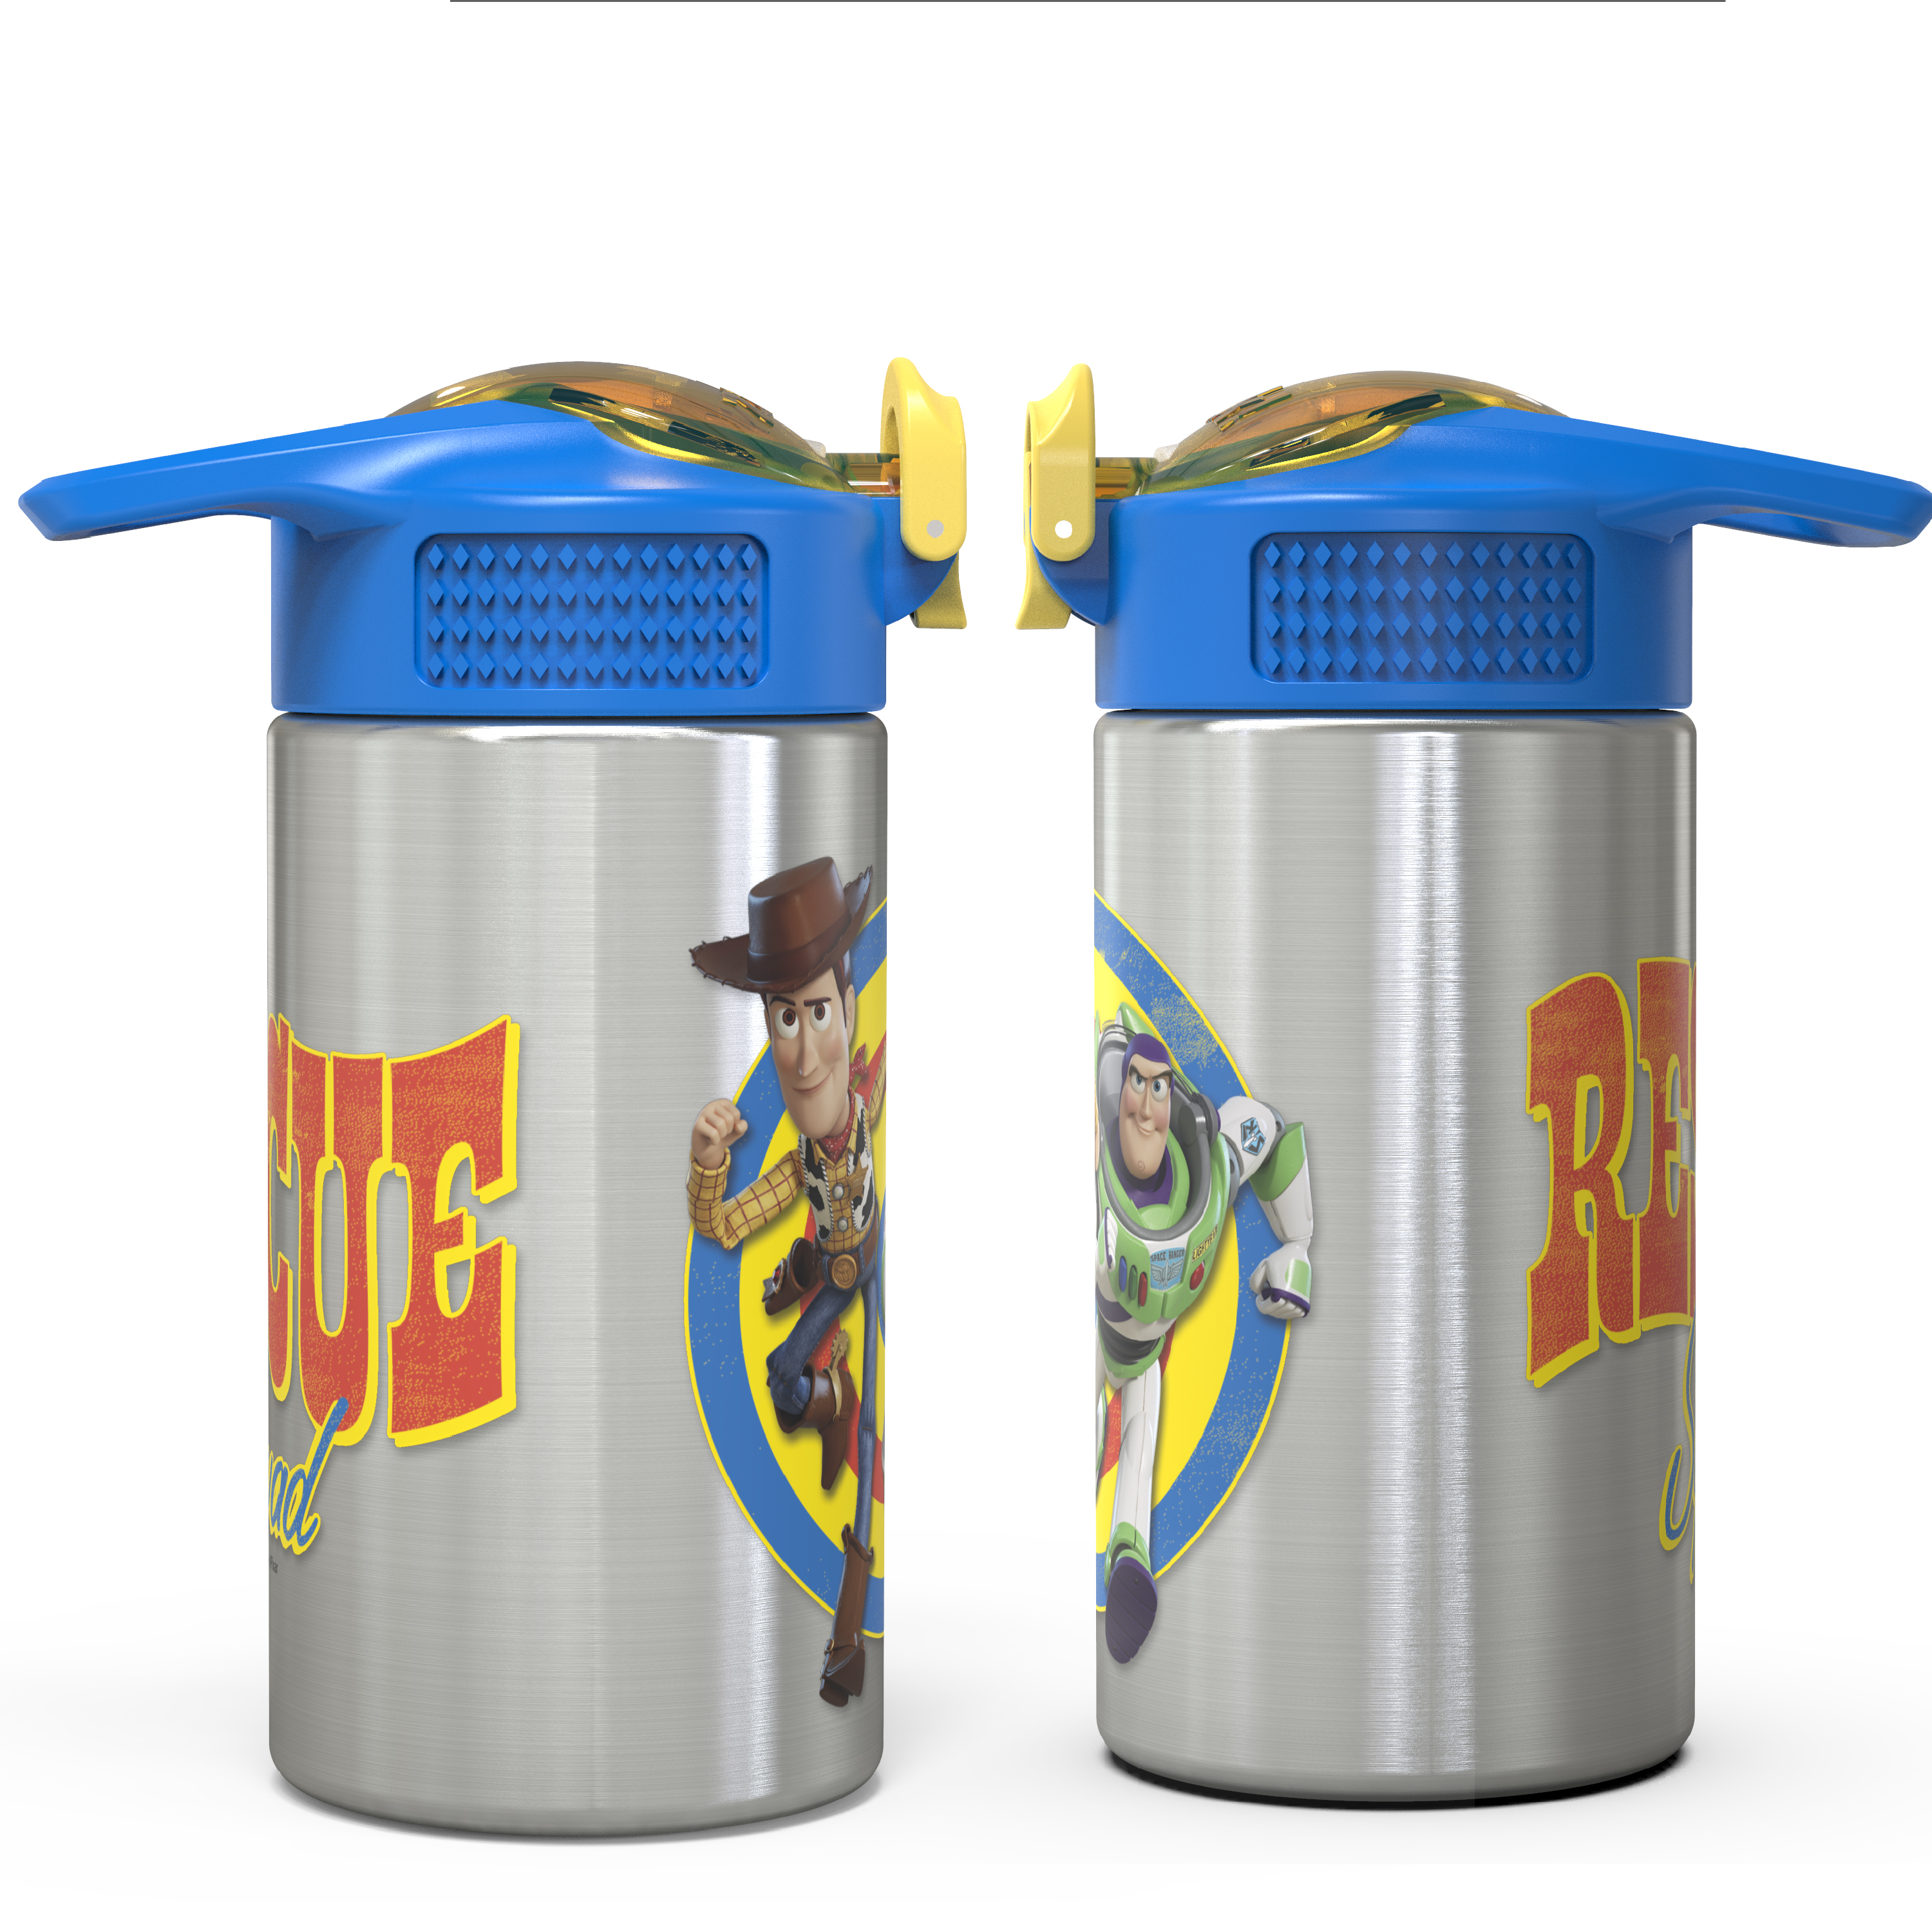 Toy Story 4 15.5 ounce Water Bottle, Buzz & Woody slideshow image 13